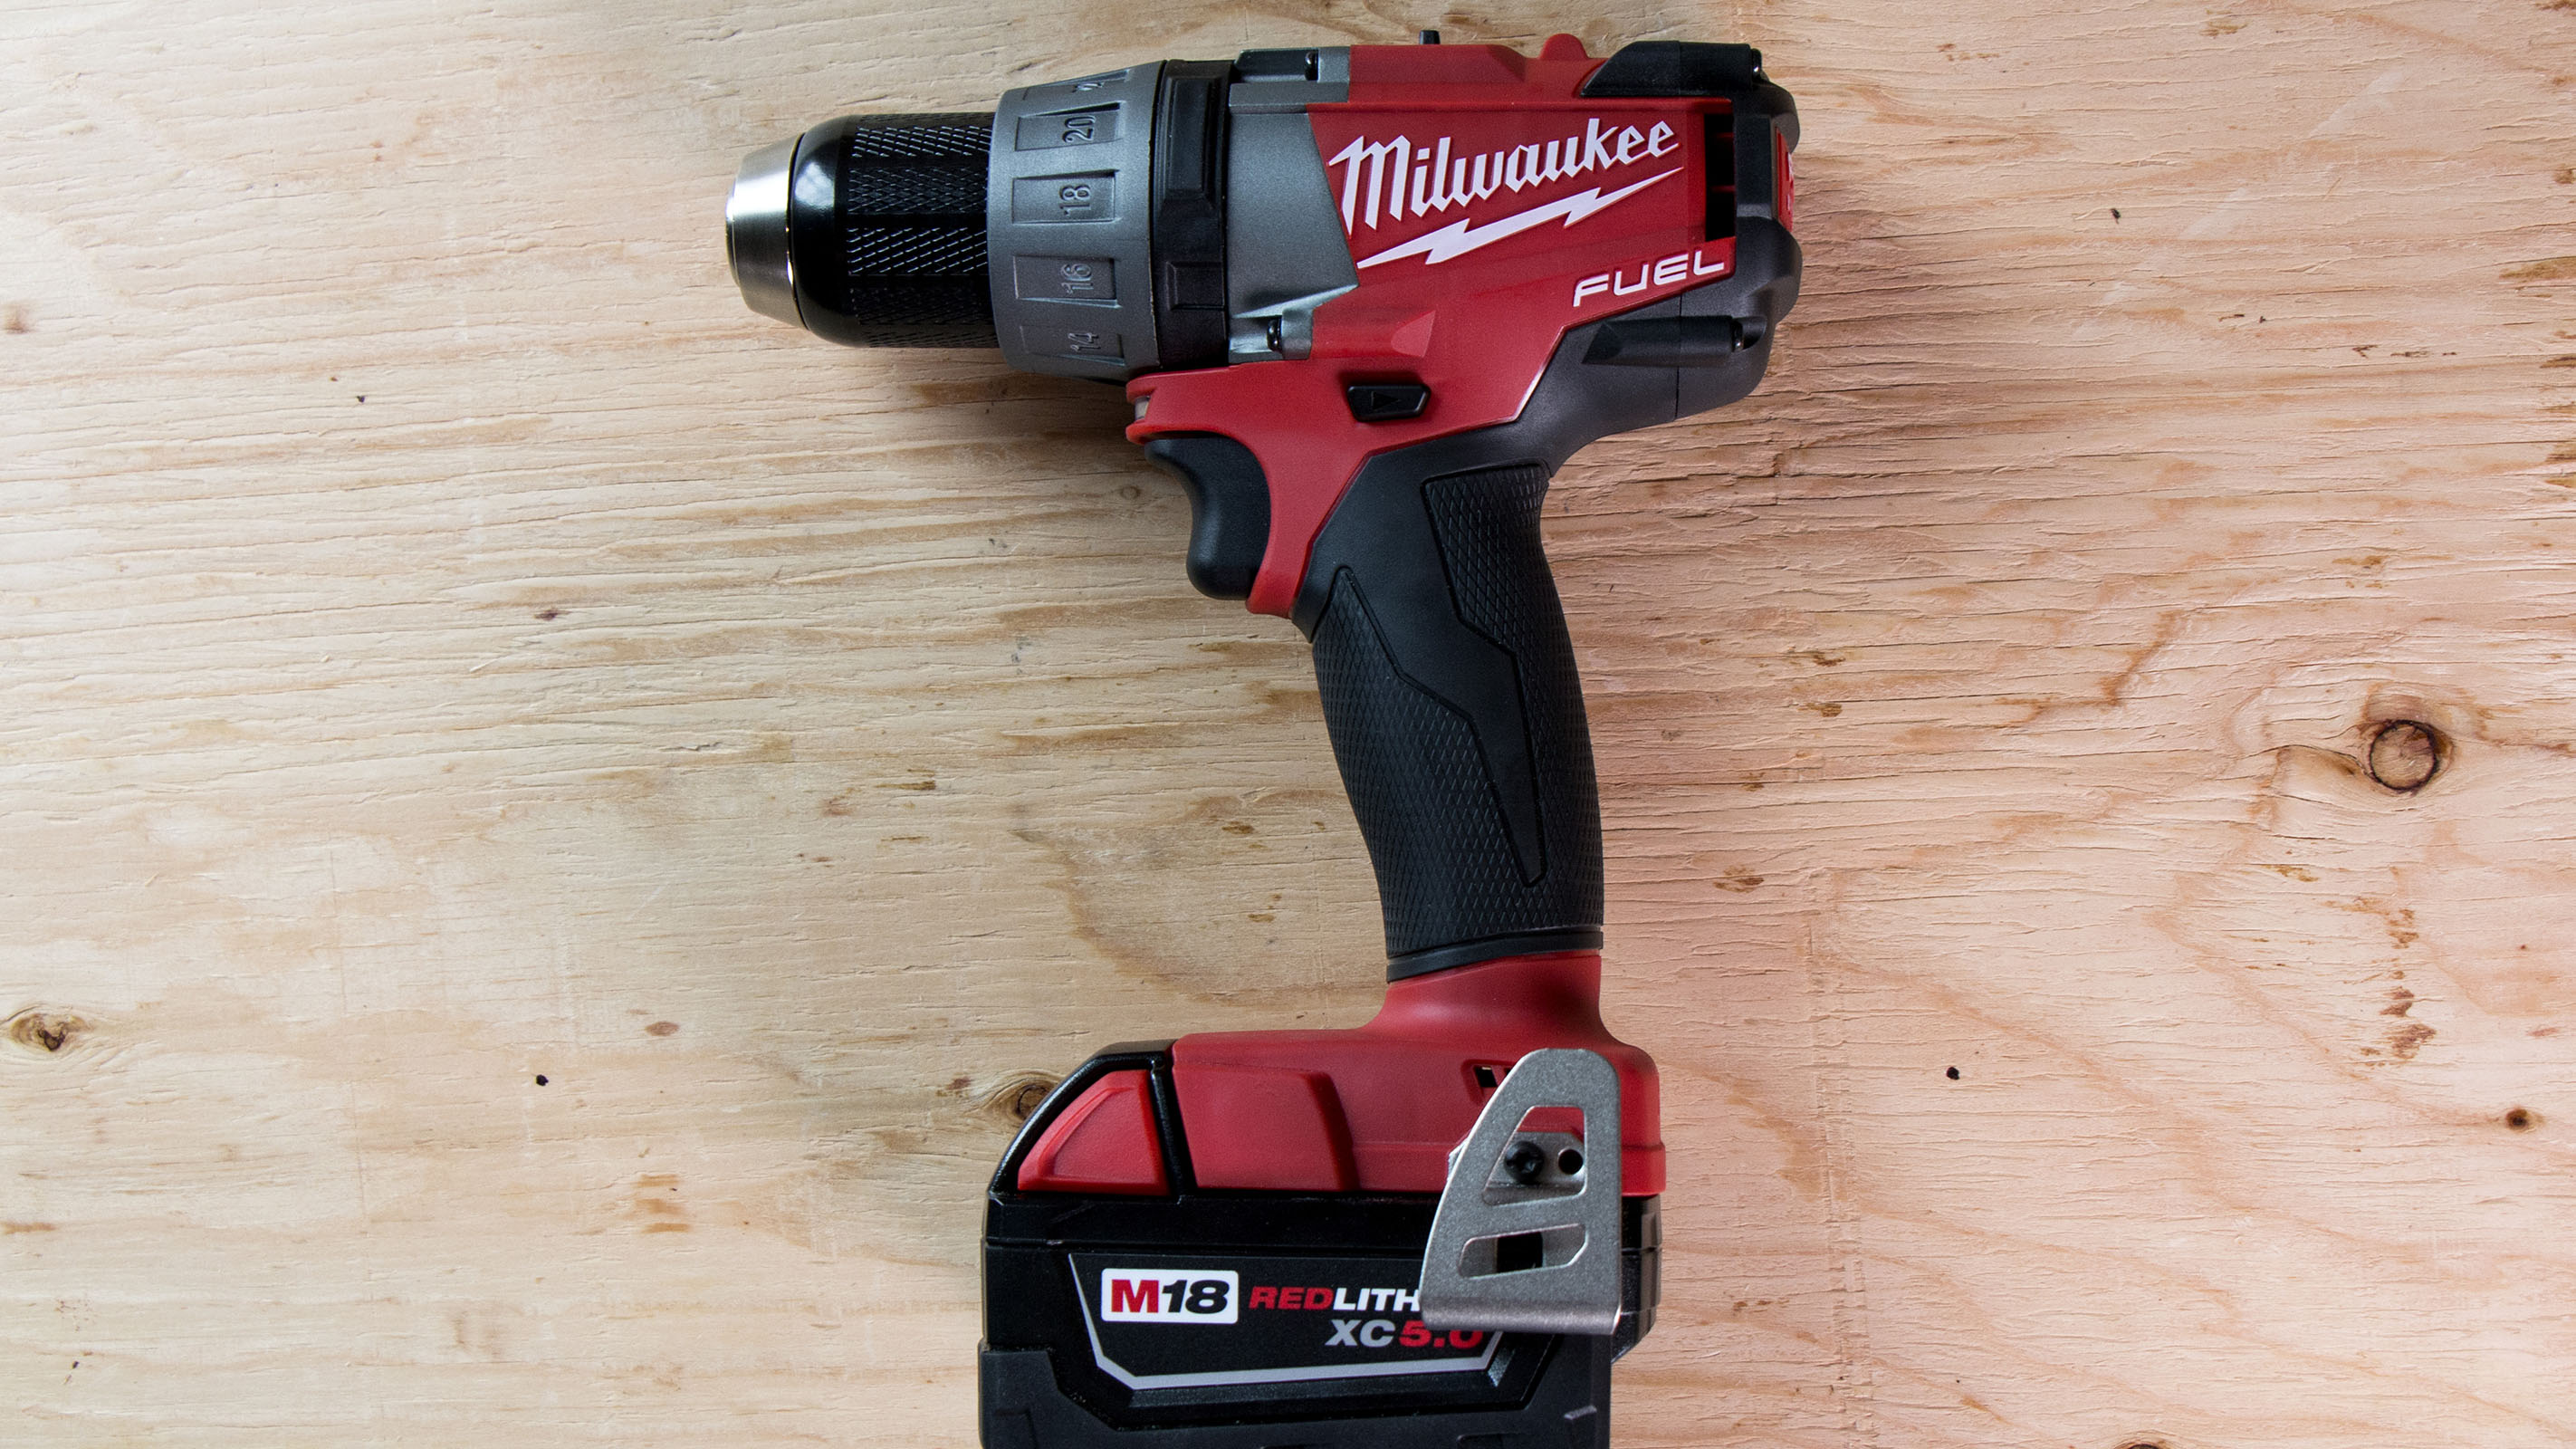 Best Cordless Power Drills 2019 - Battery Life and Performance Tests